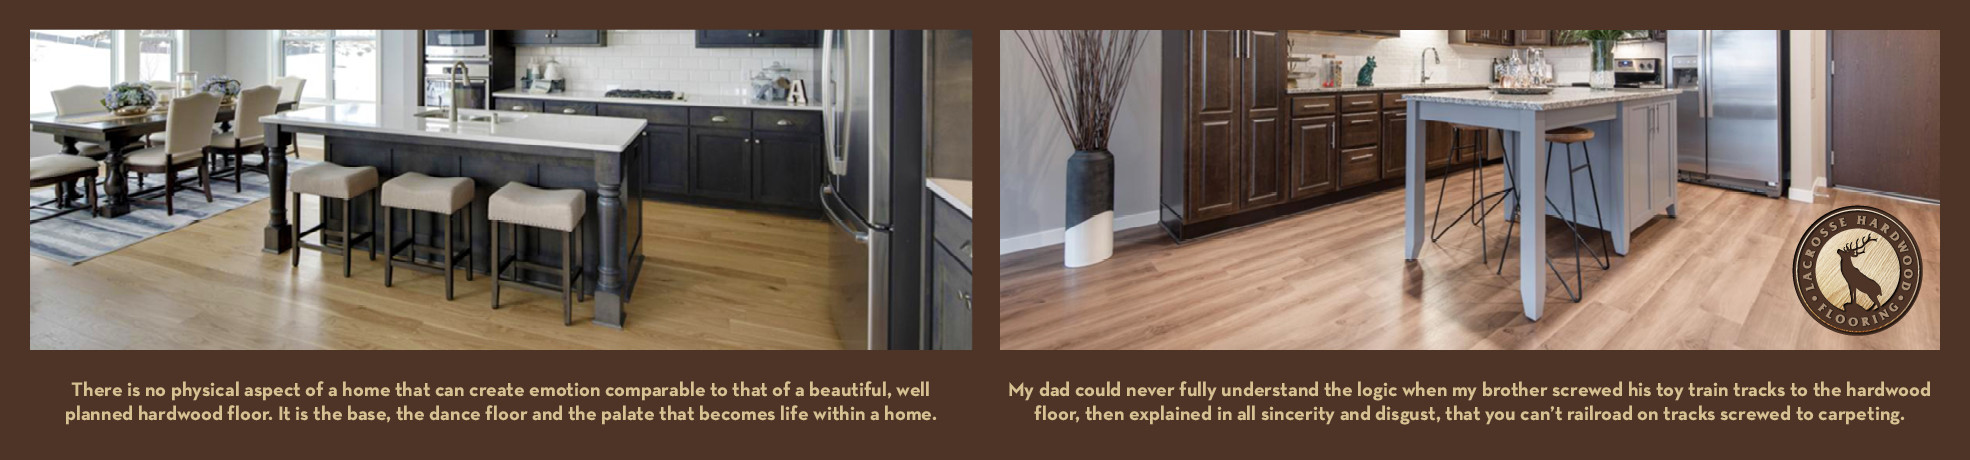 best prices on hardwood flooring of lacrosse hardwood flooring walnut white oak red oak hickory pertaining to lhfsliderv24